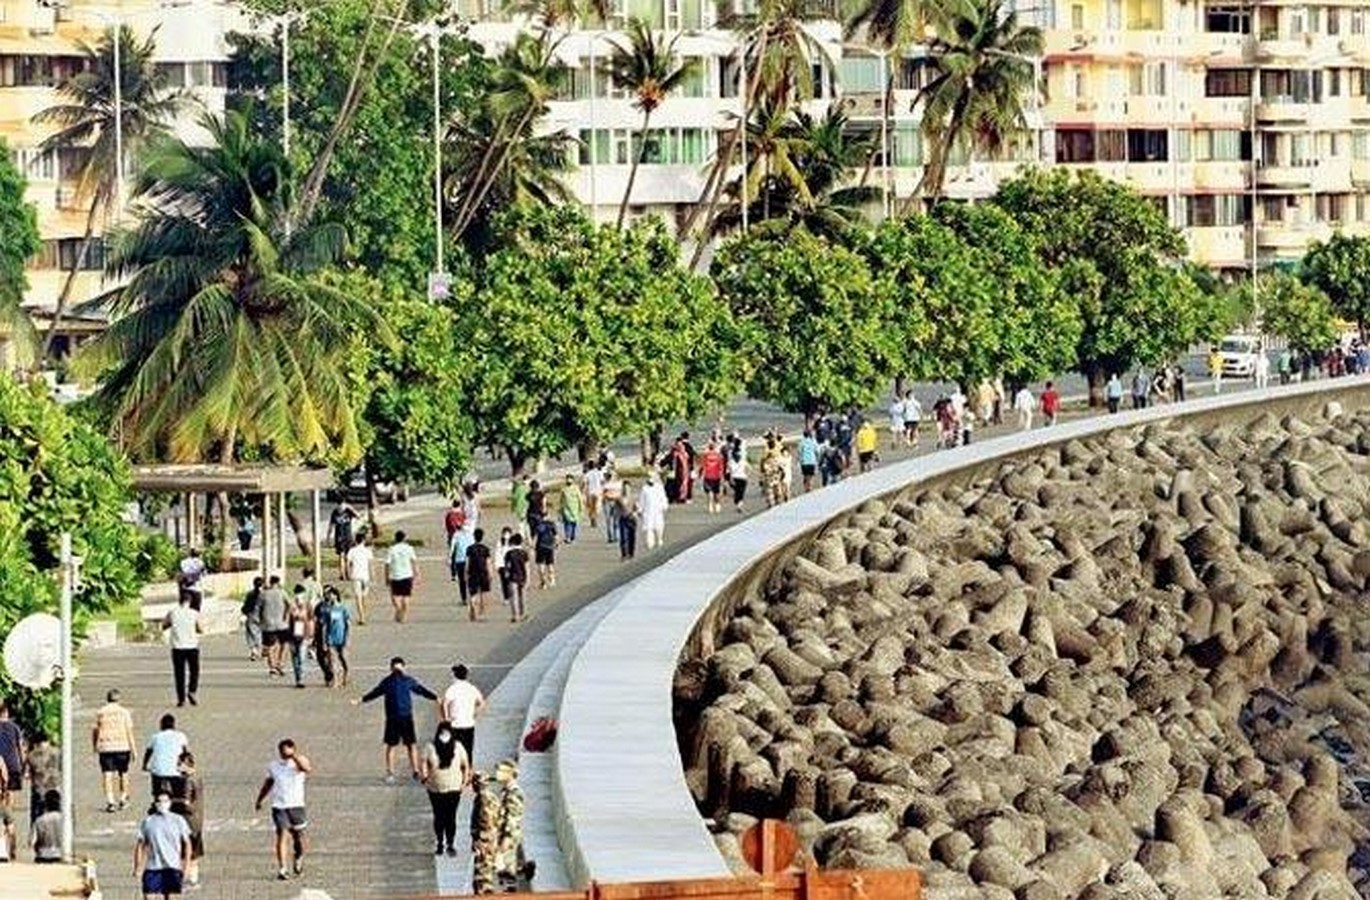 Importance of Public spaces in any urban fabric - Sheet2